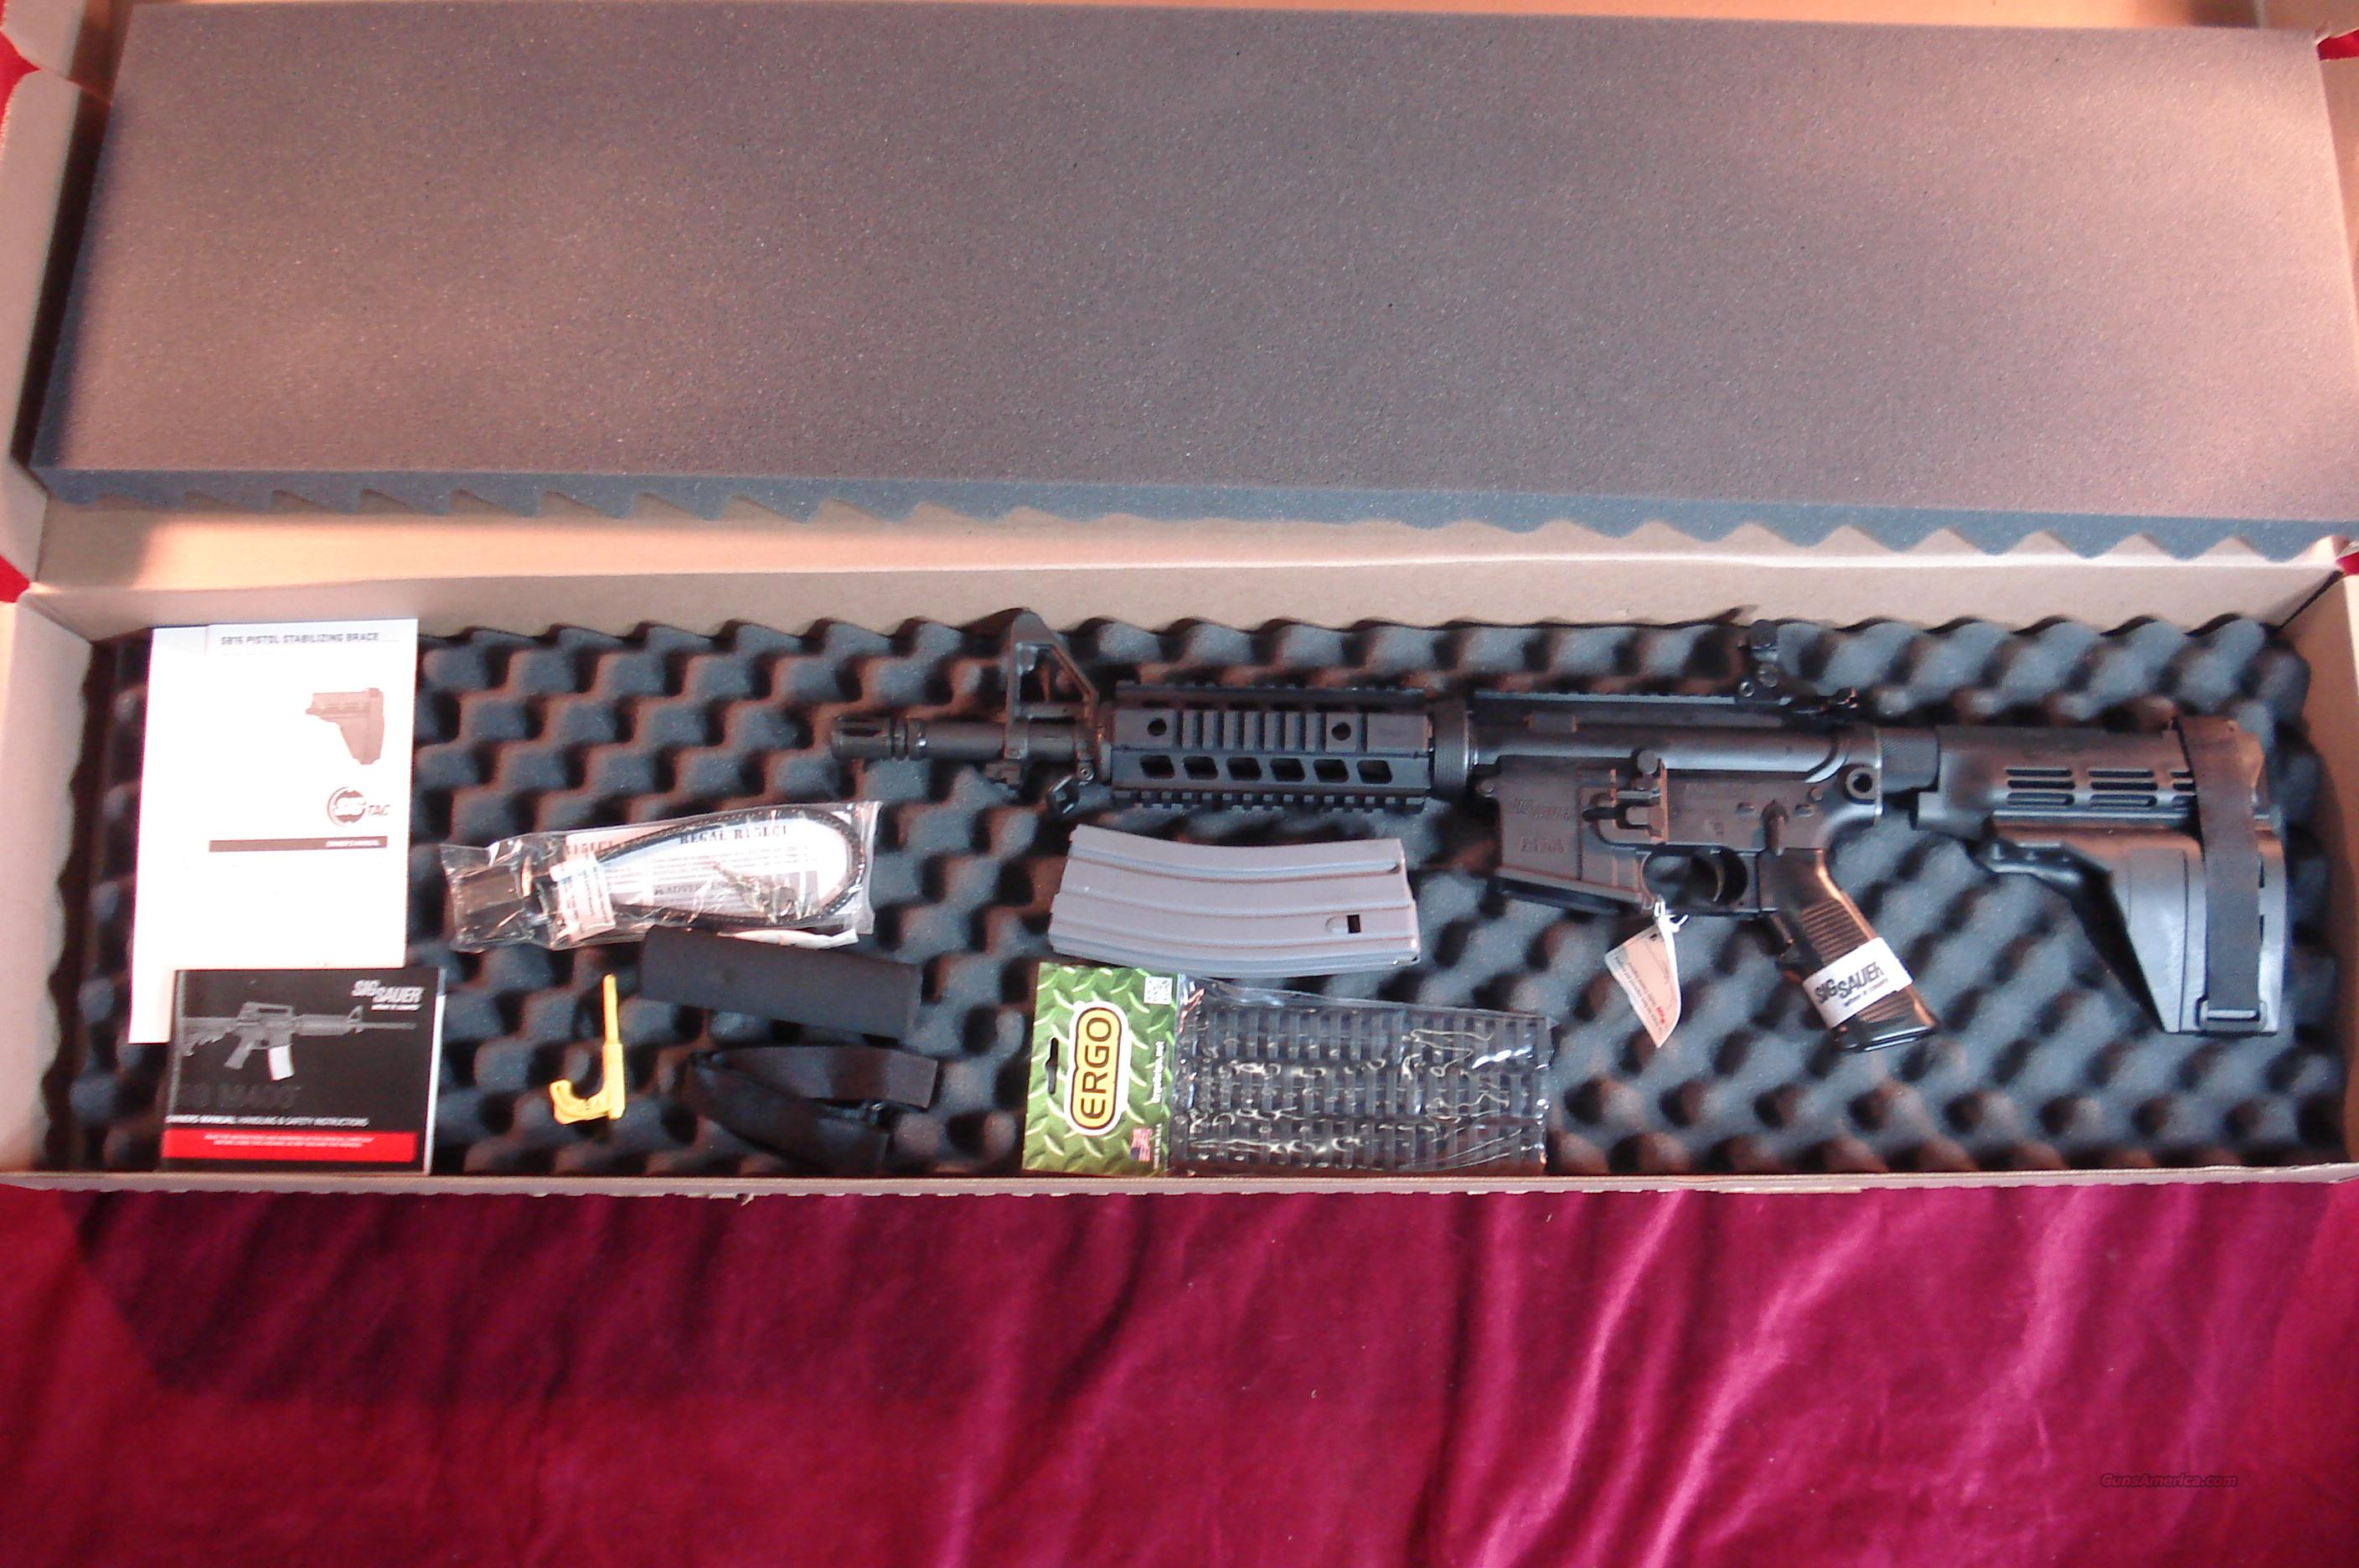 SIG SAUER M400 PISTOL  223 CAL WITH SIG PISTOL STABILIZING BRACE NEW  Guns > Pistols > Sig - Sauer/Sigarms Pistols > Other